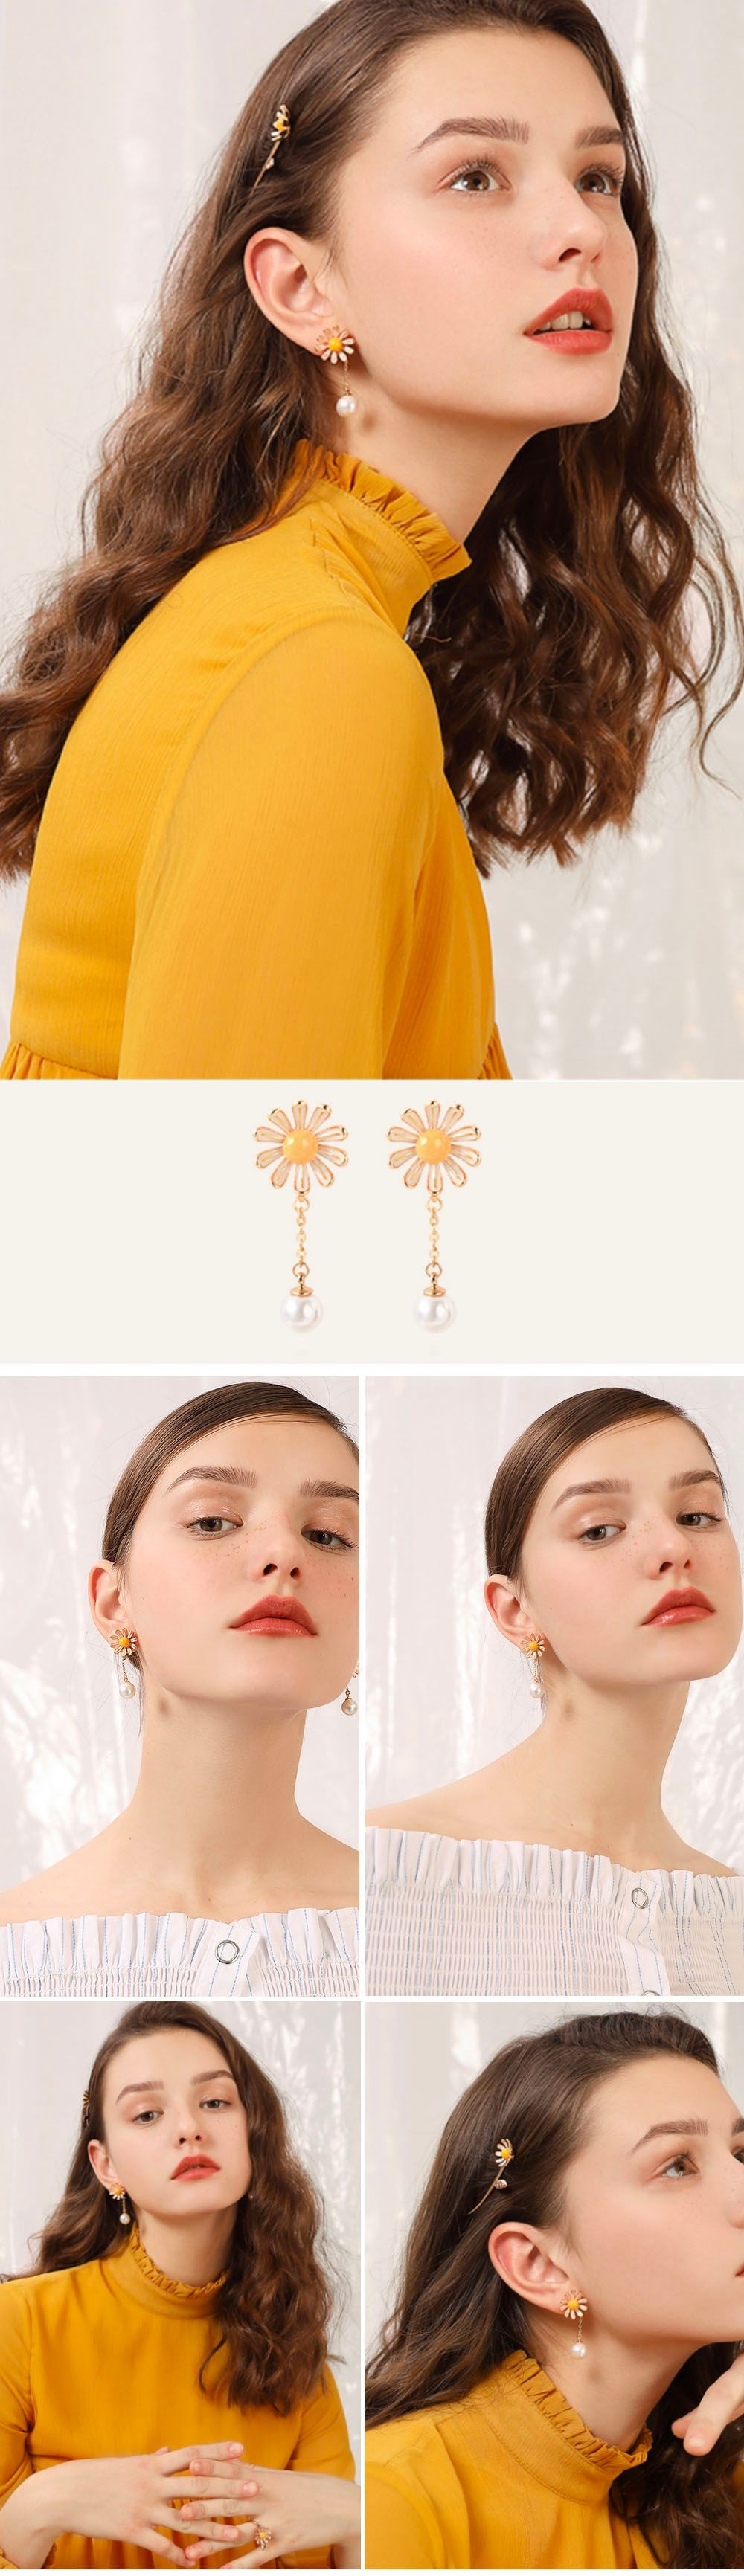 Daisy Pearl Earrings Day-To-Night Style